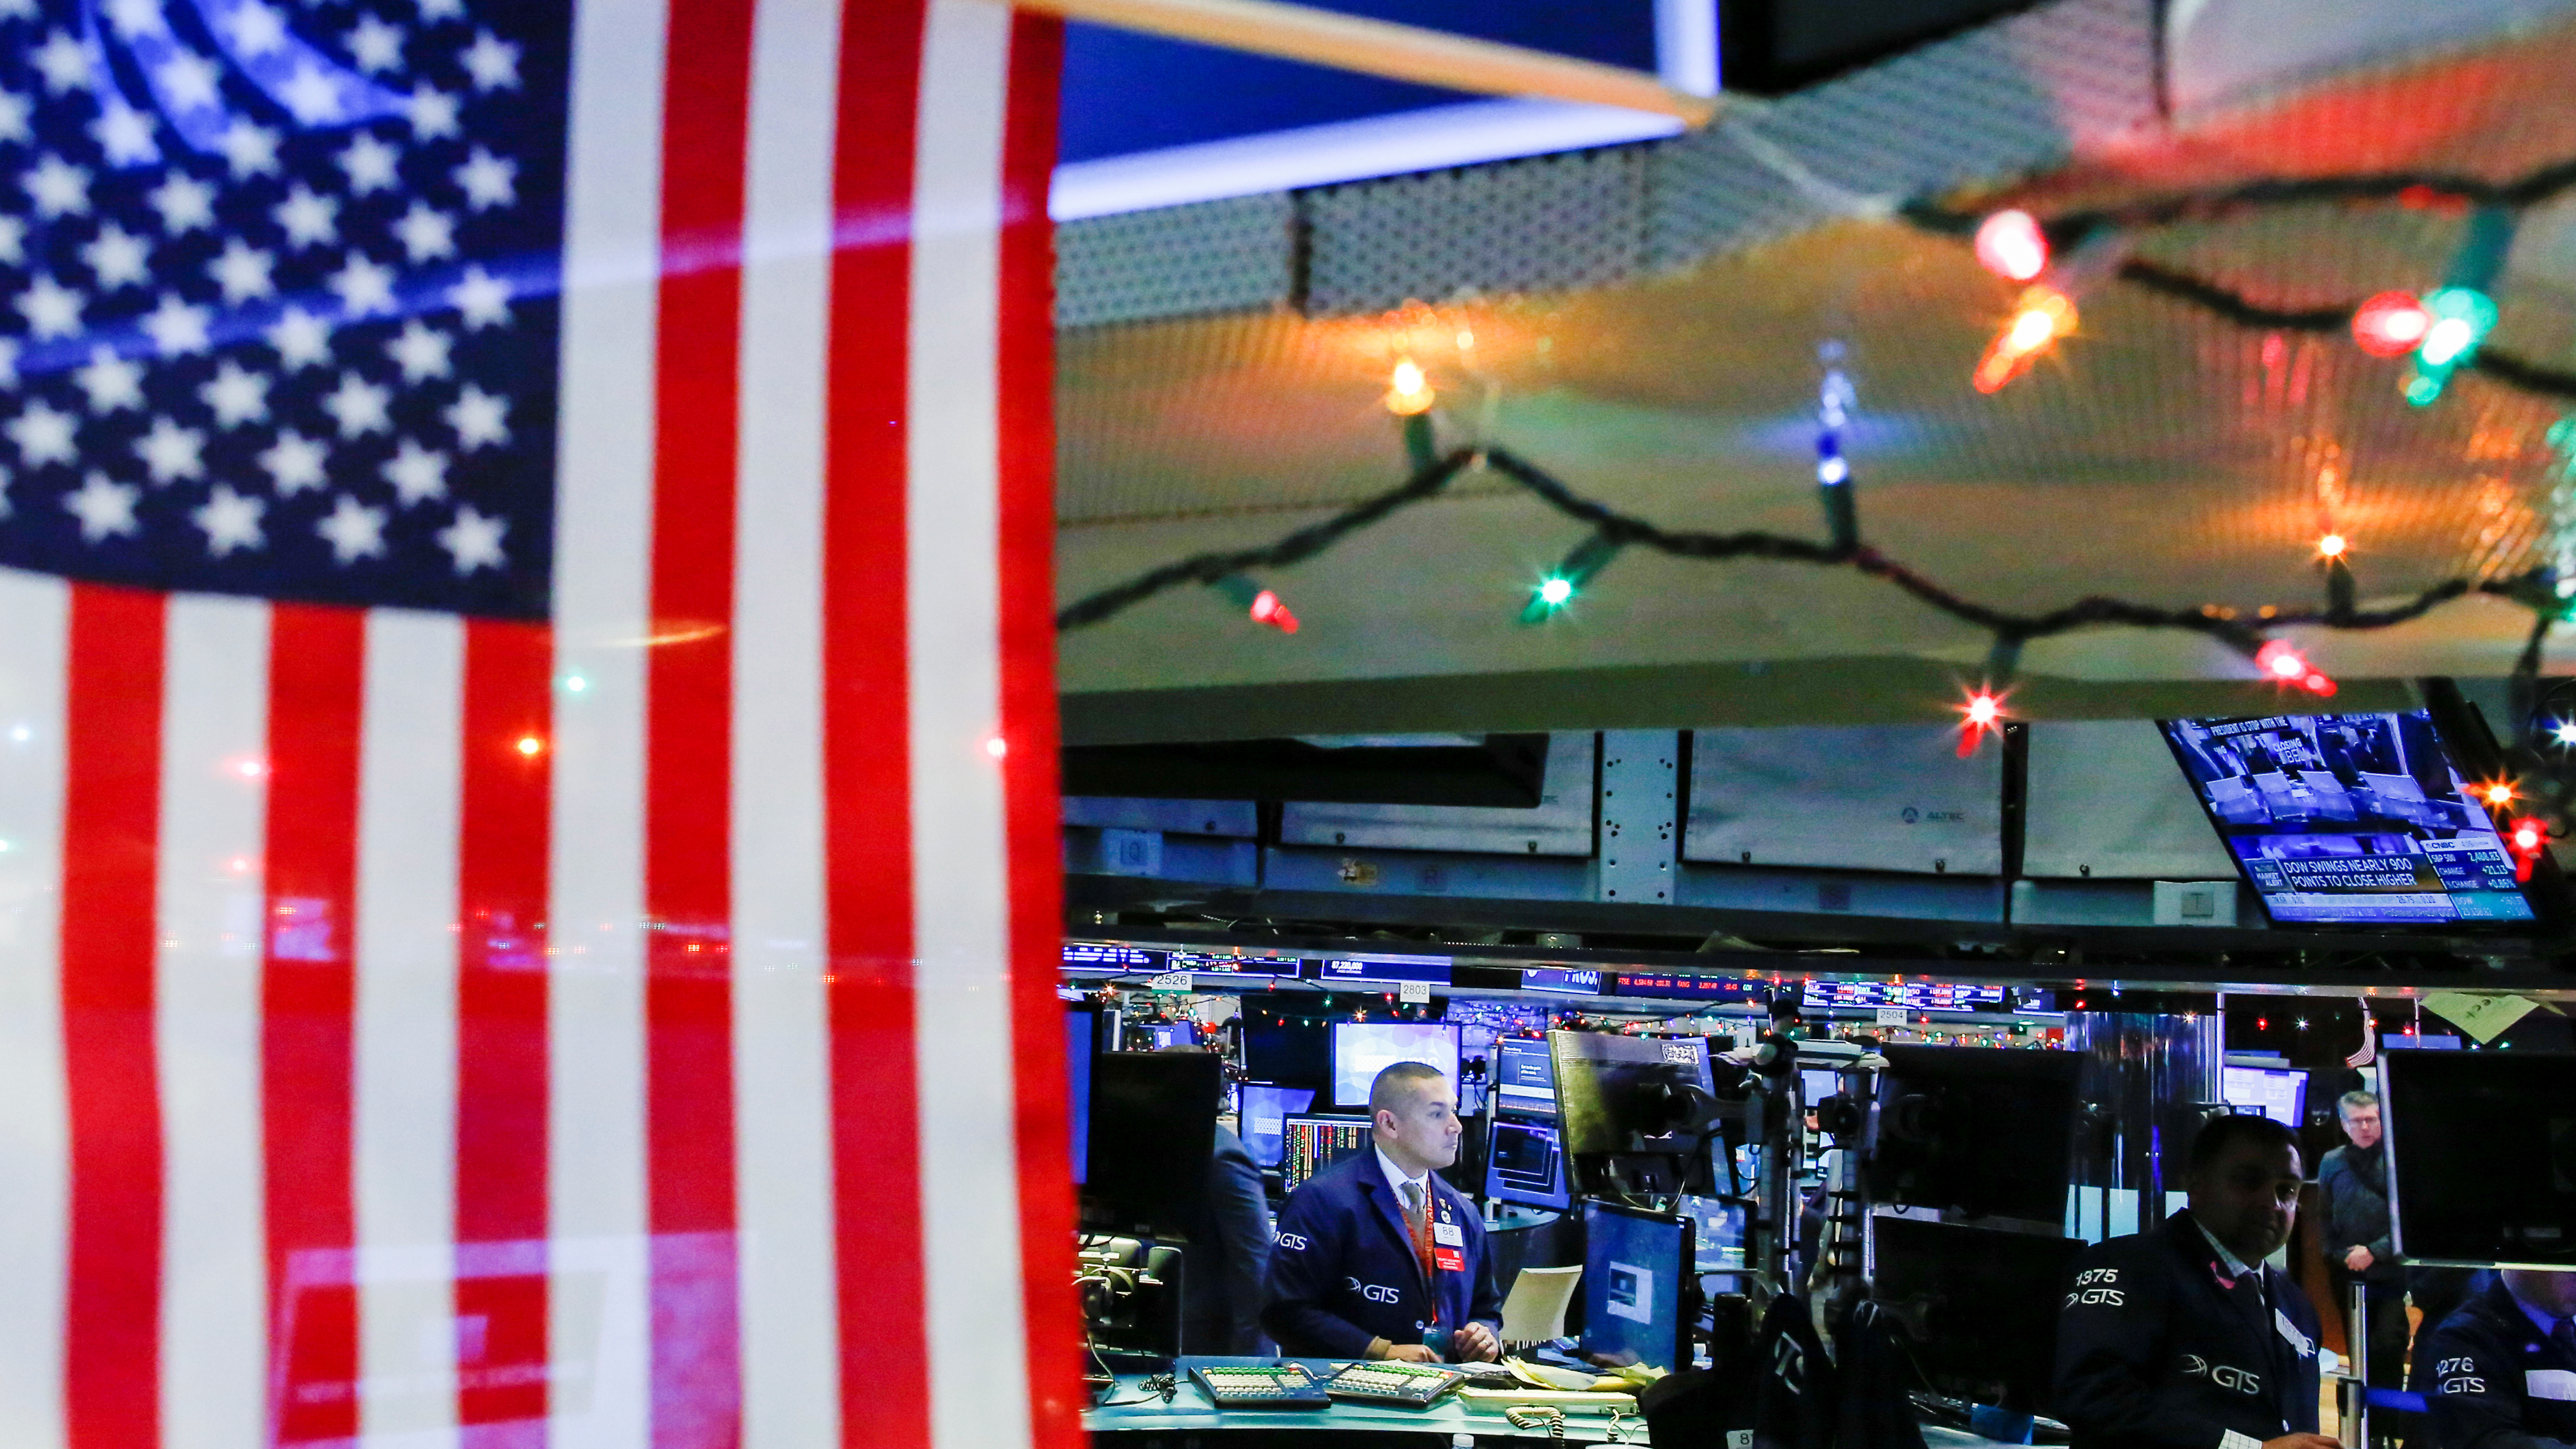 Traders work on the floor of the New York Stock Exchange (NYSE) in New York, U.S., December 27, 2018. REUTERS/Eduardo Munoz